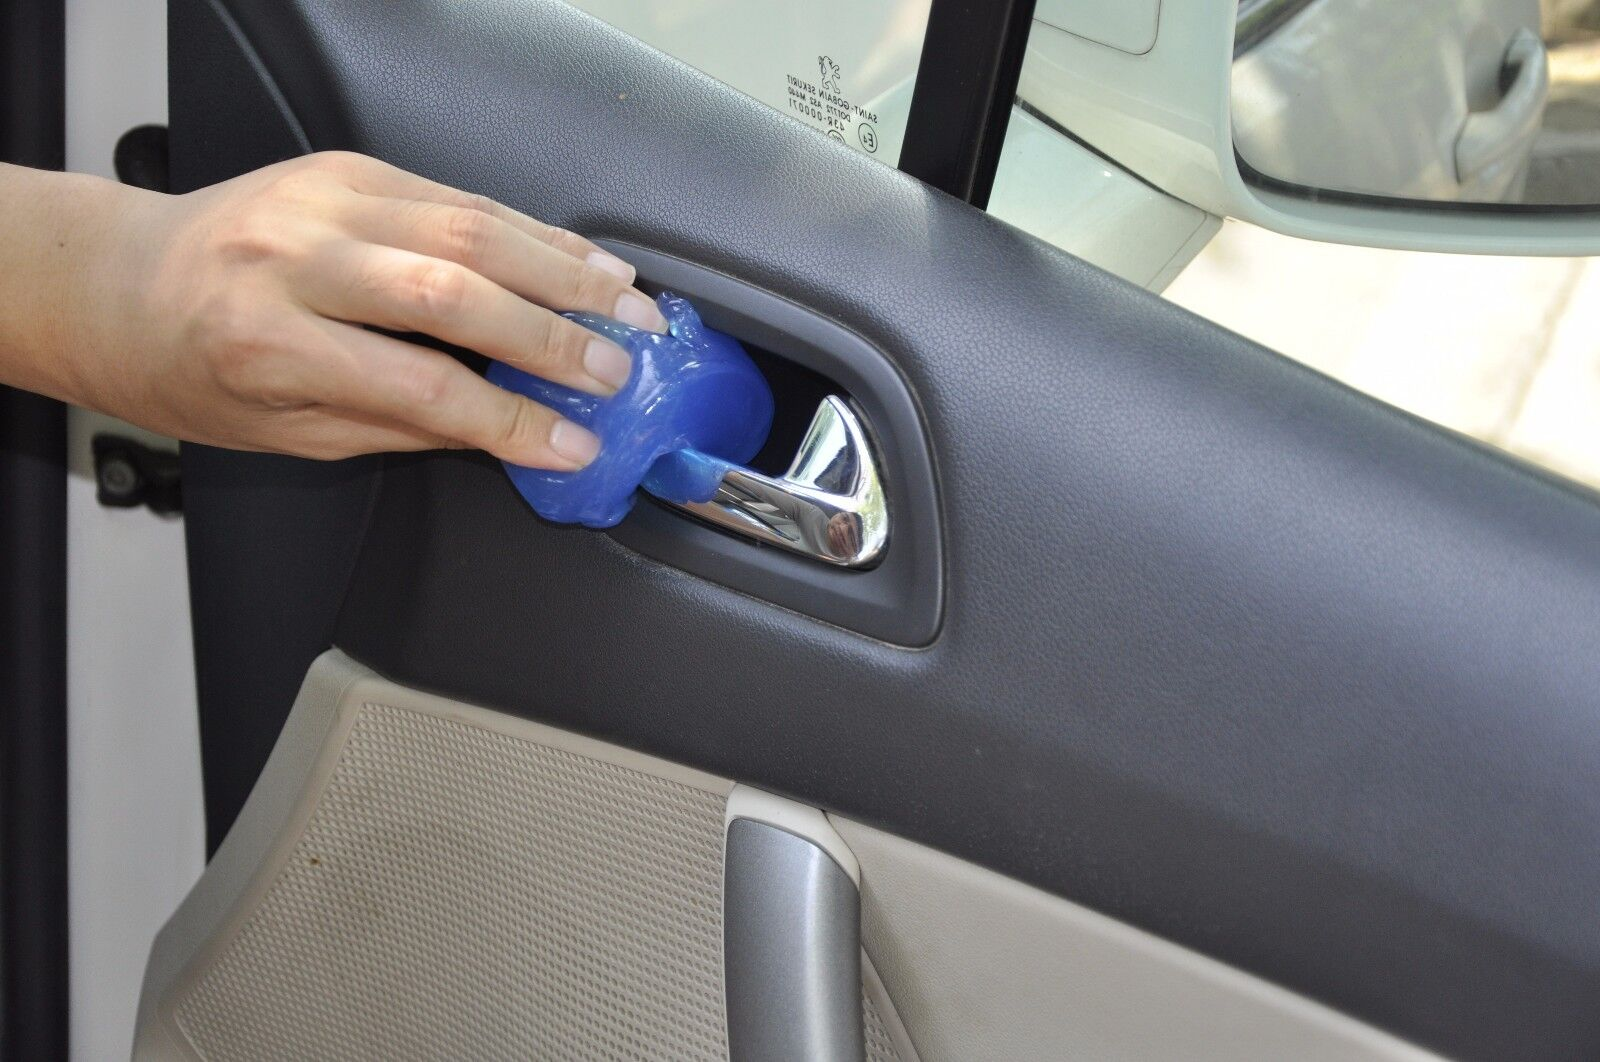 car clean glue gum gel cleaning air outlet vent dashboard interior cleaner tool picclick. Black Bedroom Furniture Sets. Home Design Ideas